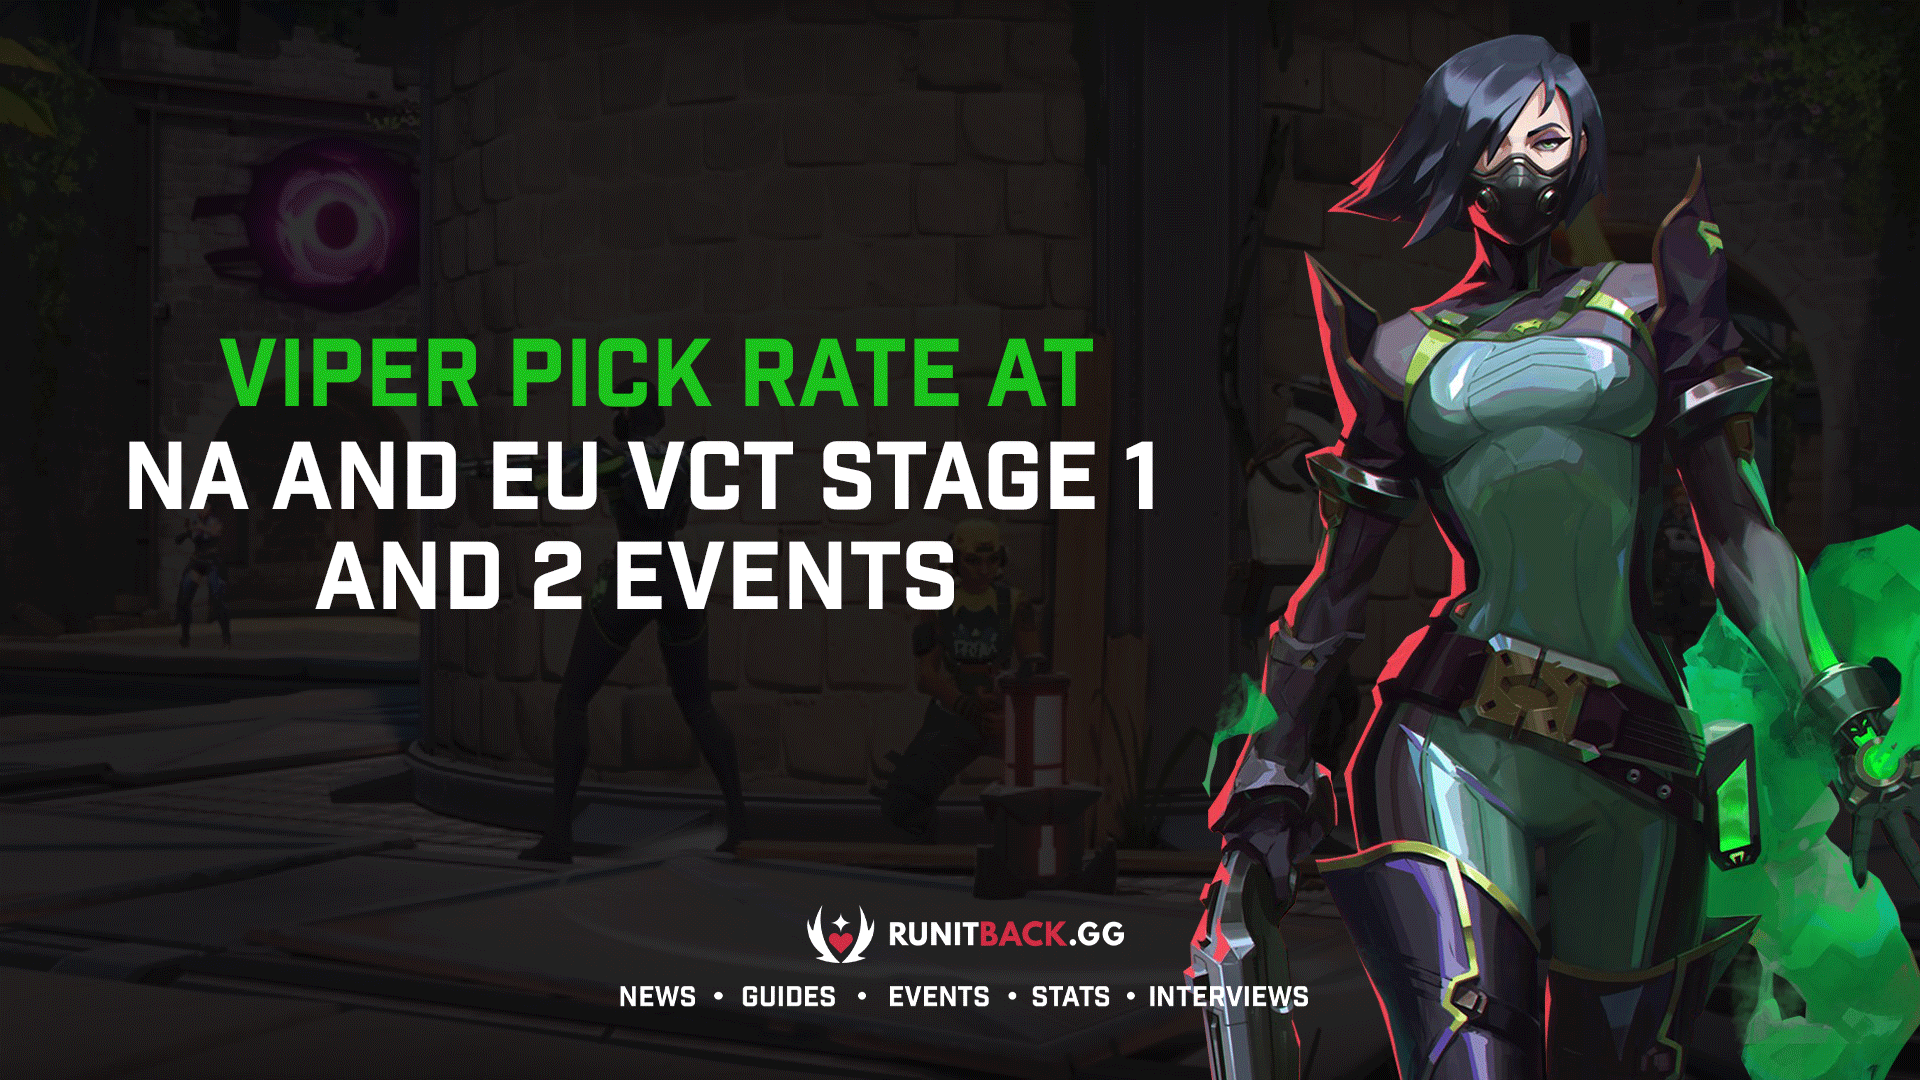 Viper pick rate at NA and EU VCT Stage 1 and 2 events